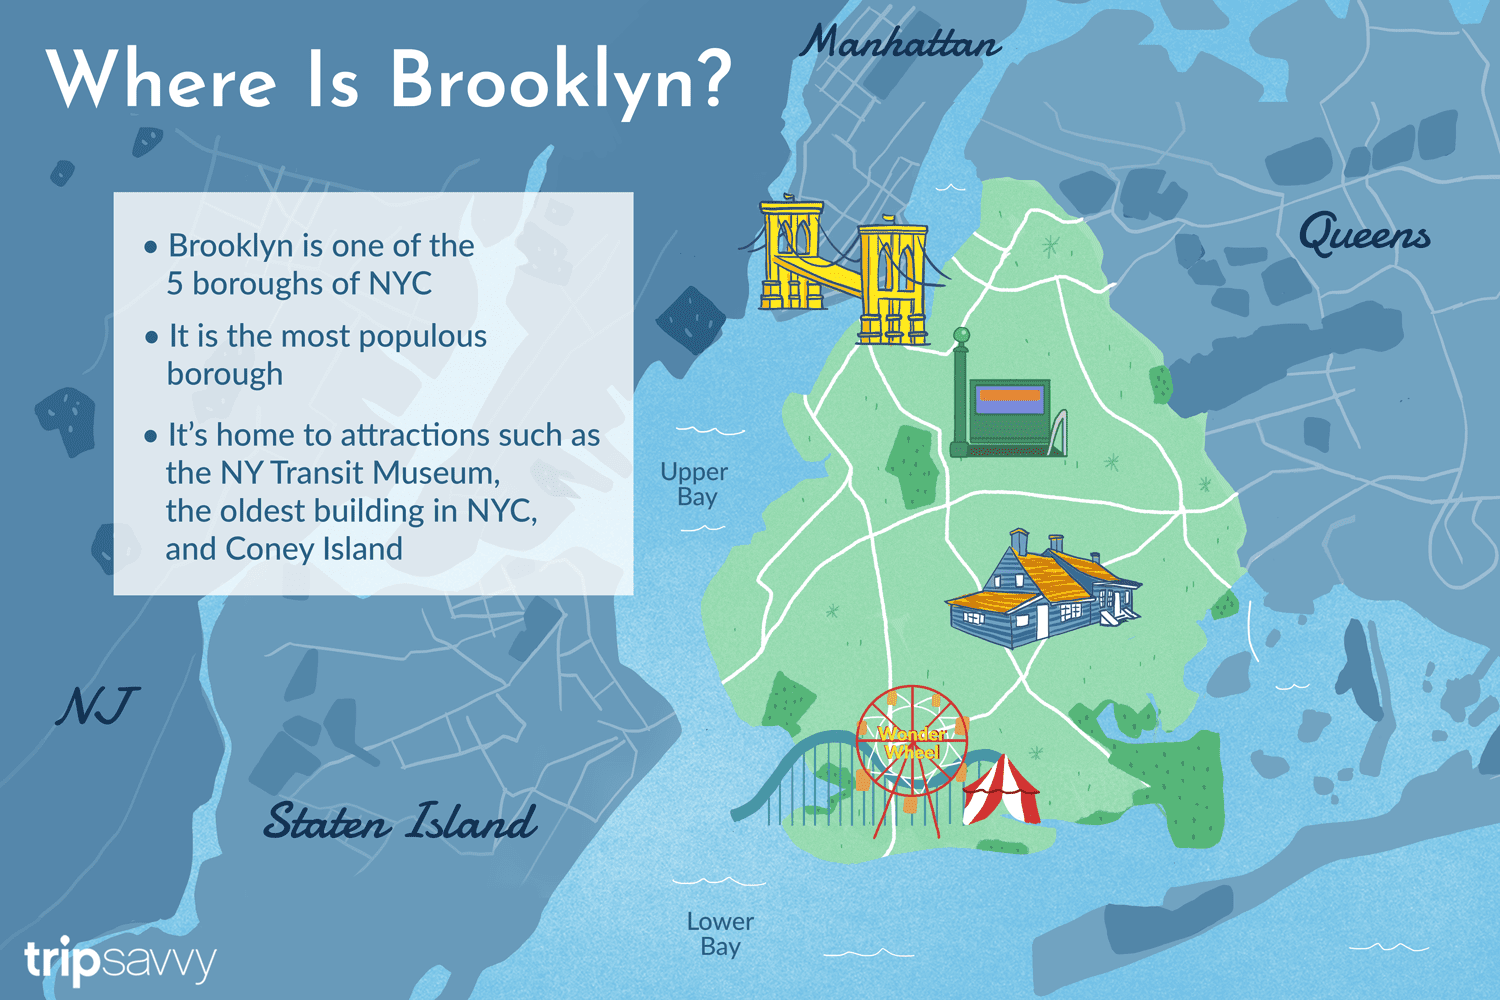 Where Is Brooklyn In What County and City